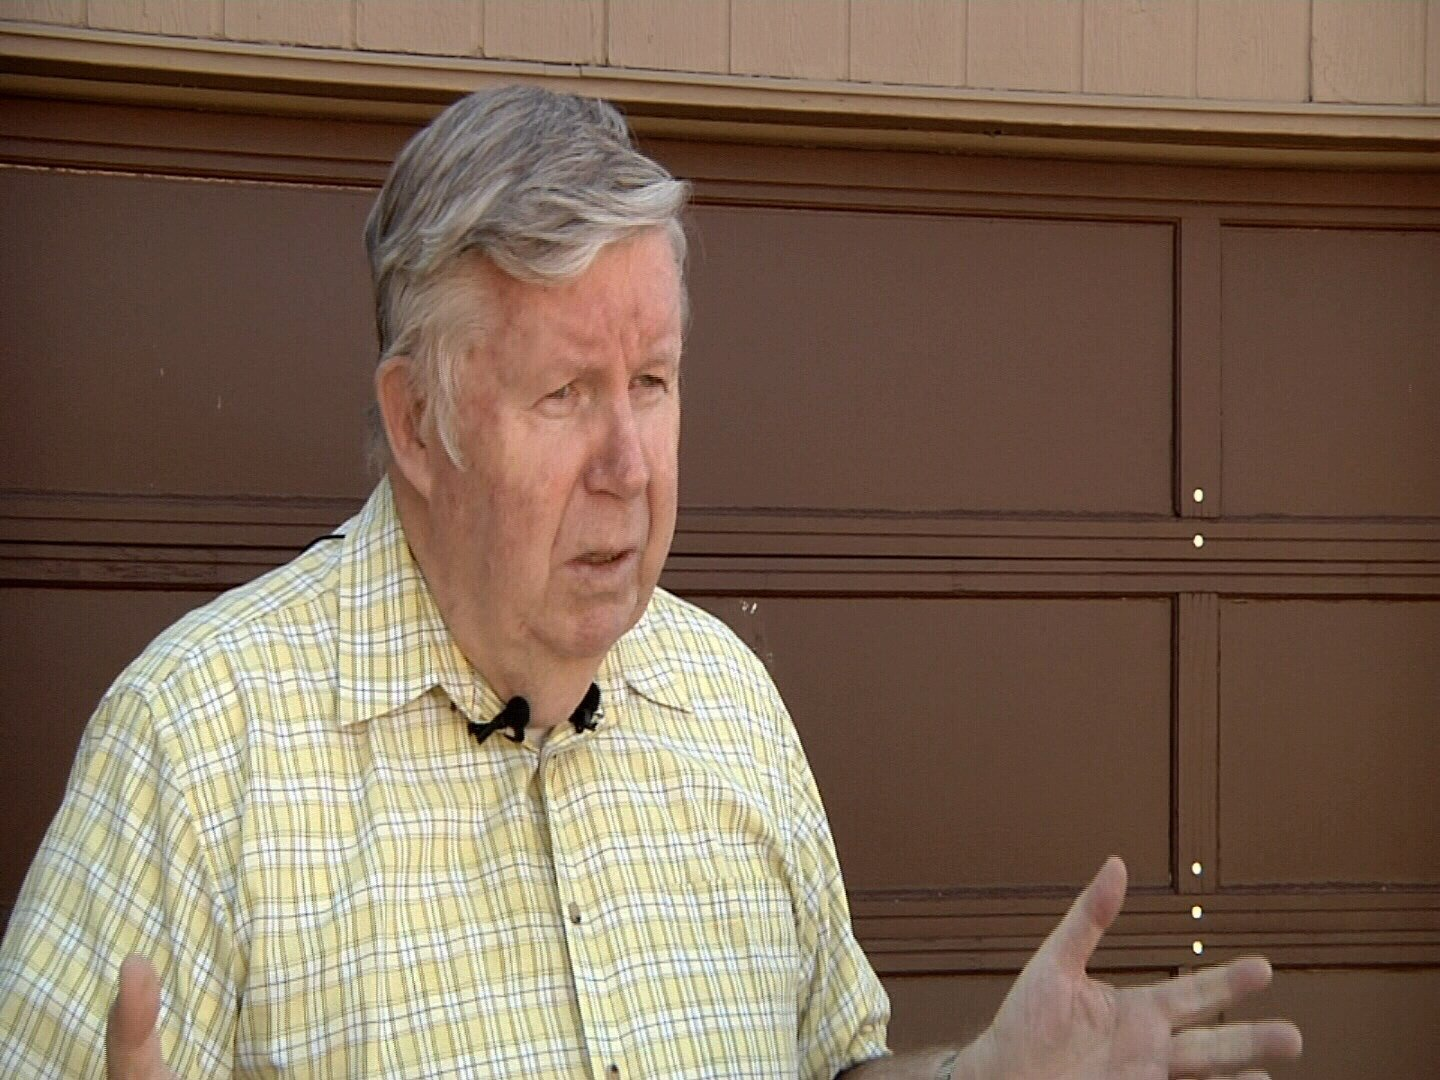 Former County Commissioner and State Assemblyman Douglas Bruce is the author of the Taxpayers Bill of Rights, known as the TABOR Amendment